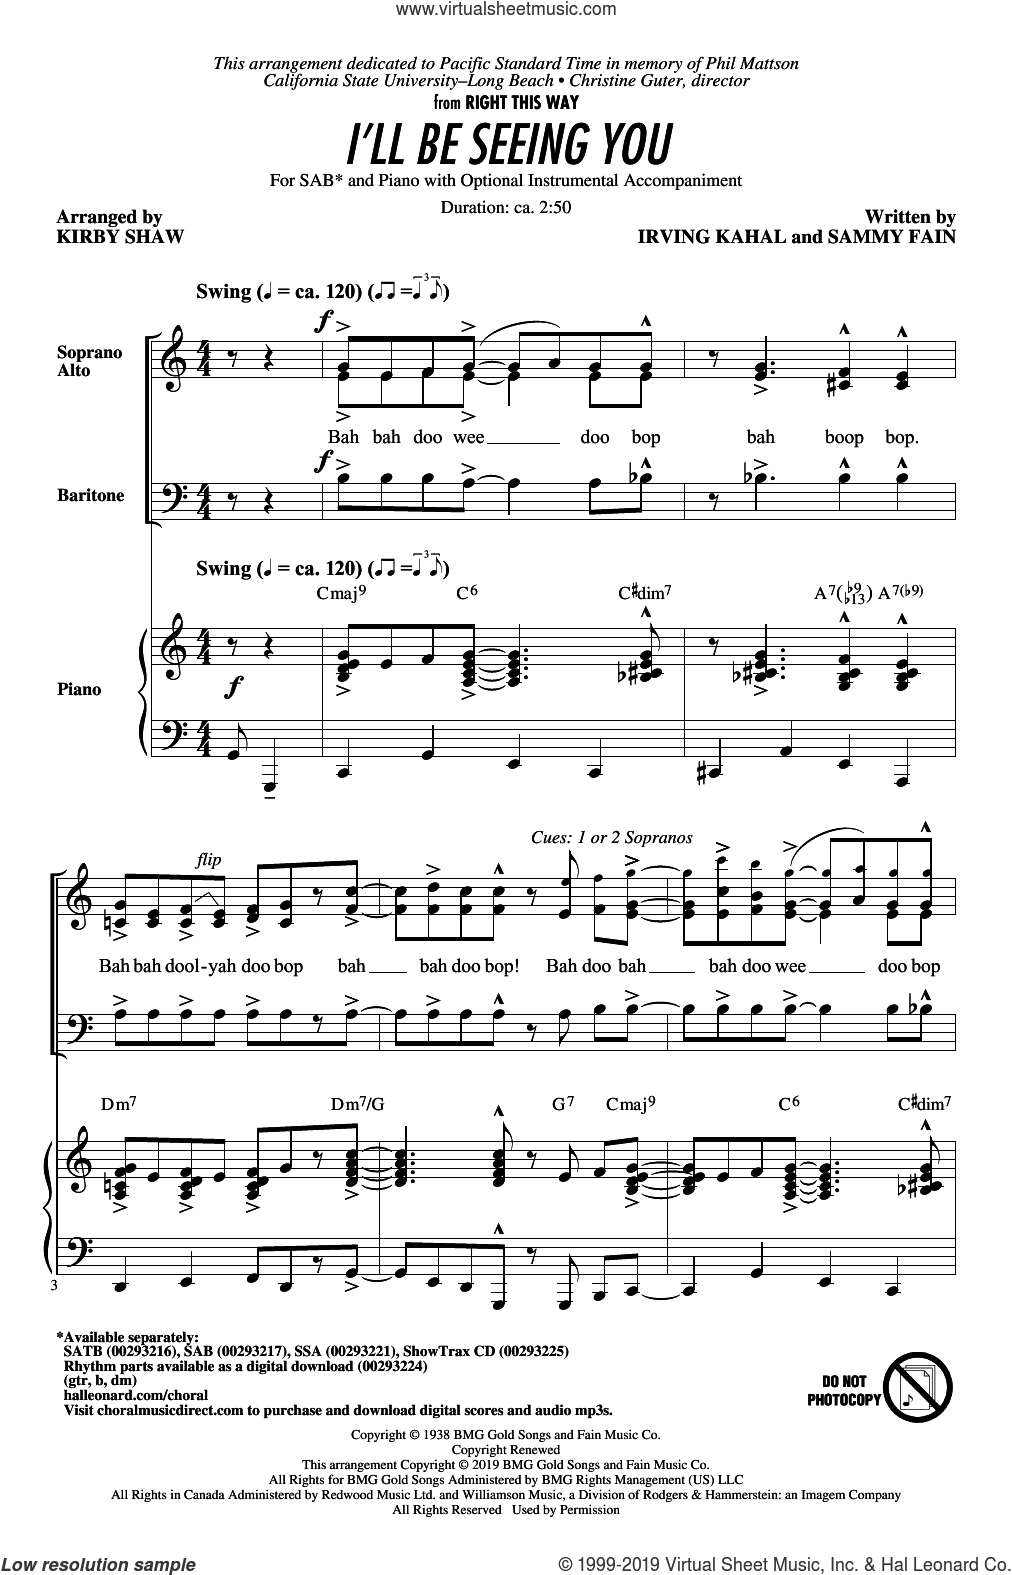 I'll Be Seeing You (arr. Kirby Shaw) sheet music for choir (SAB: soprano, alto, bass) by Sammy Fain, Kirby Shaw and Irving Kahal, intermediate skill level